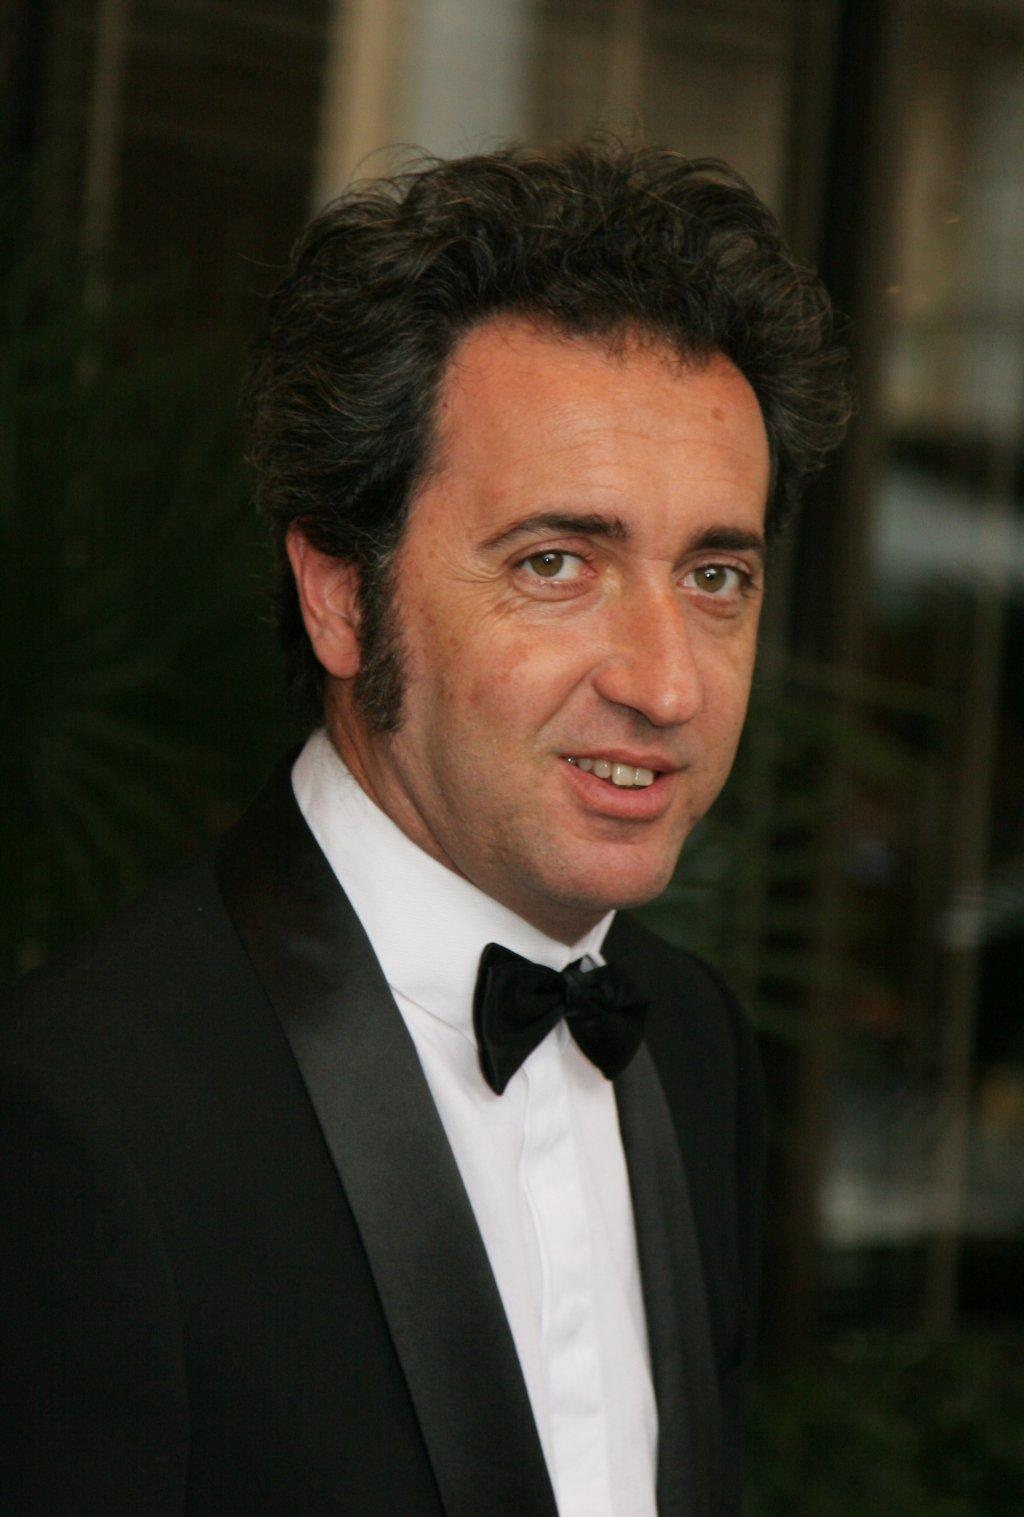 paolo sorrentino parents